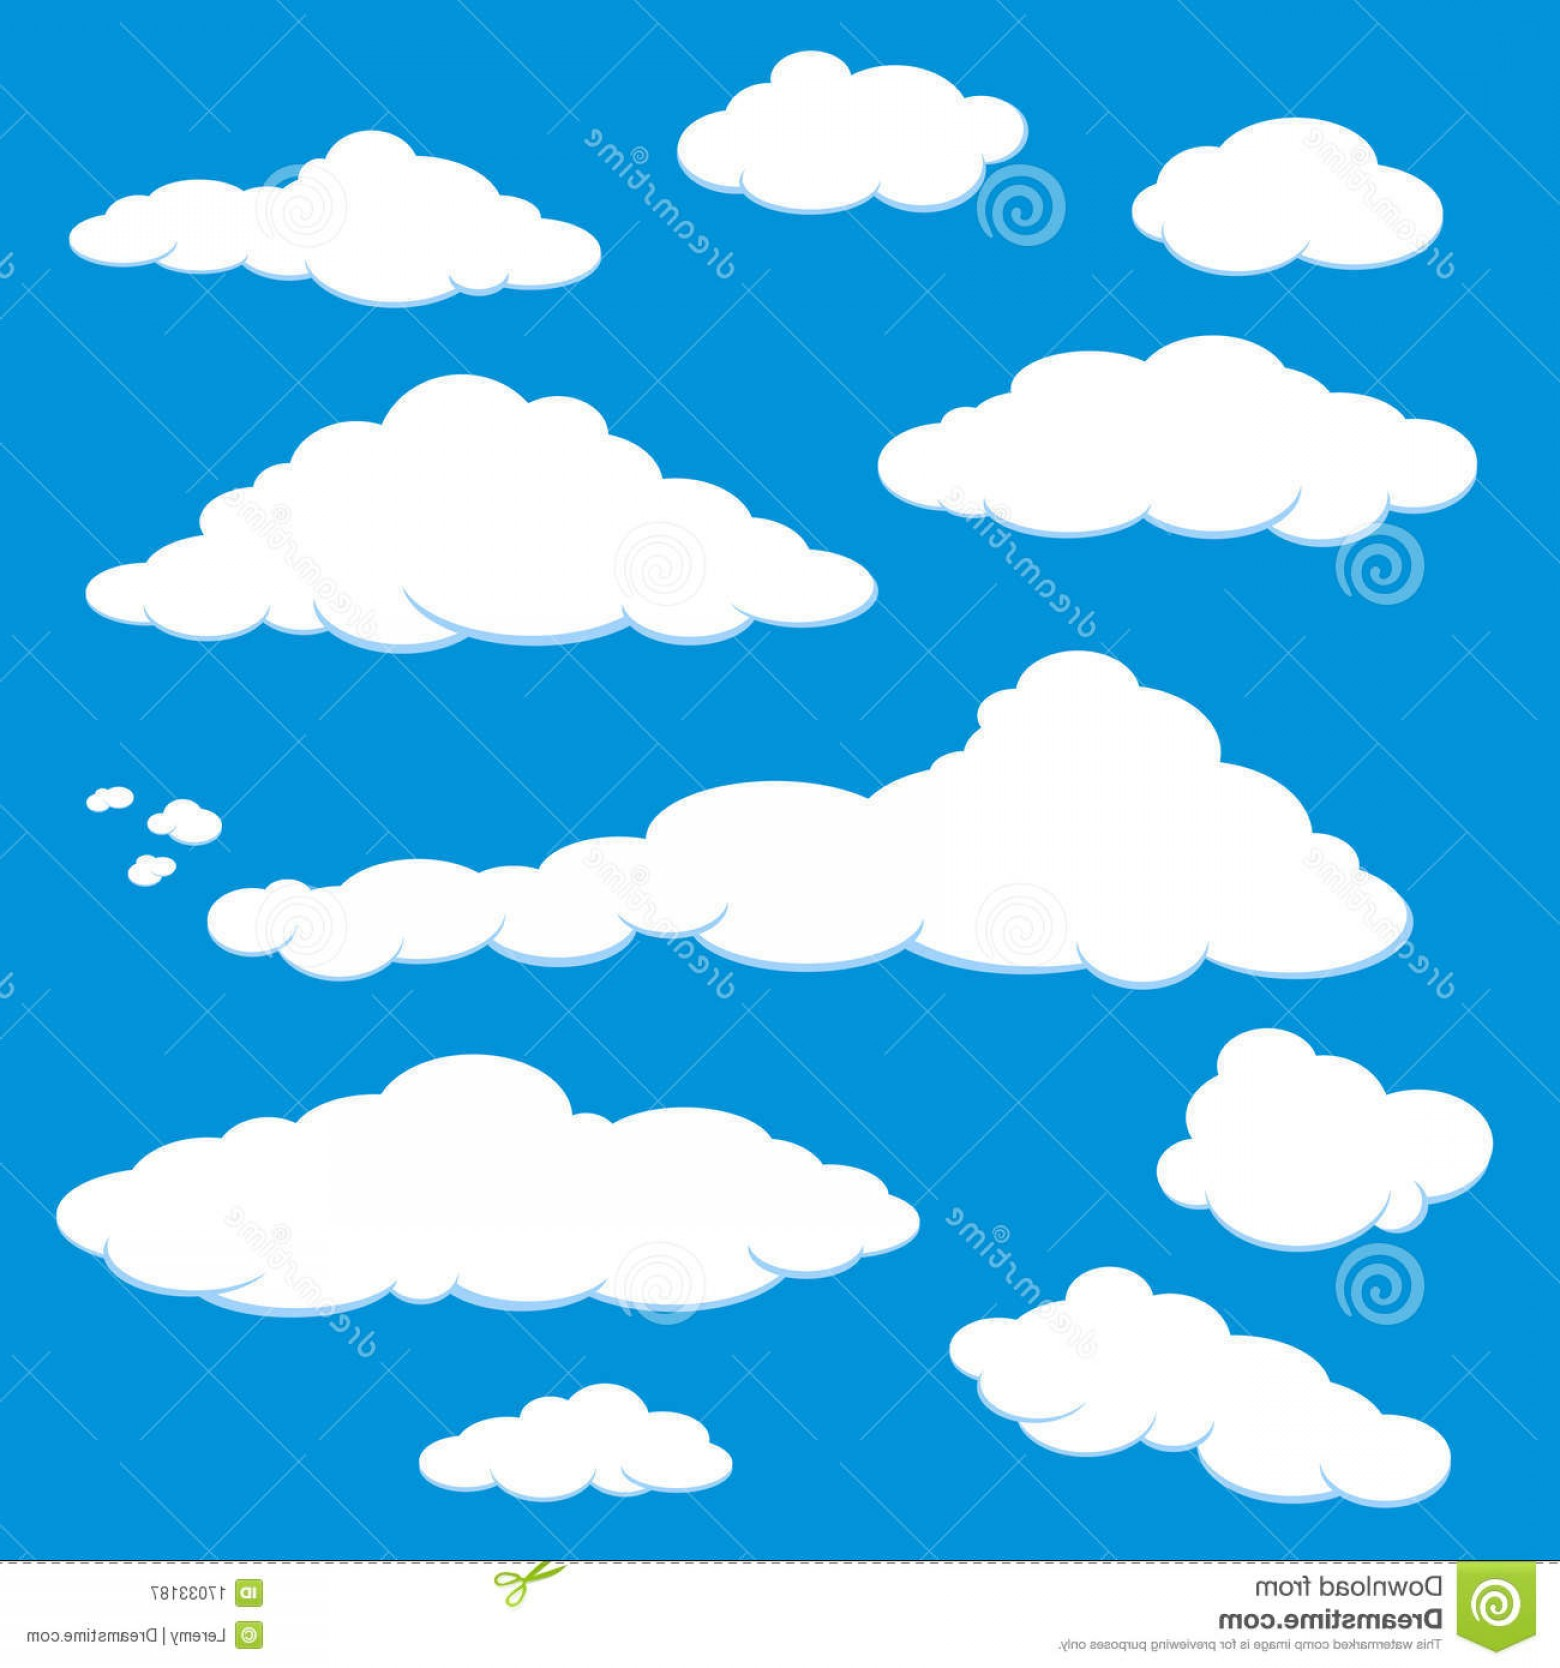 Users SkyVector.com: Royalty Free Stock Photography Cloud Blue Sky Vector Image